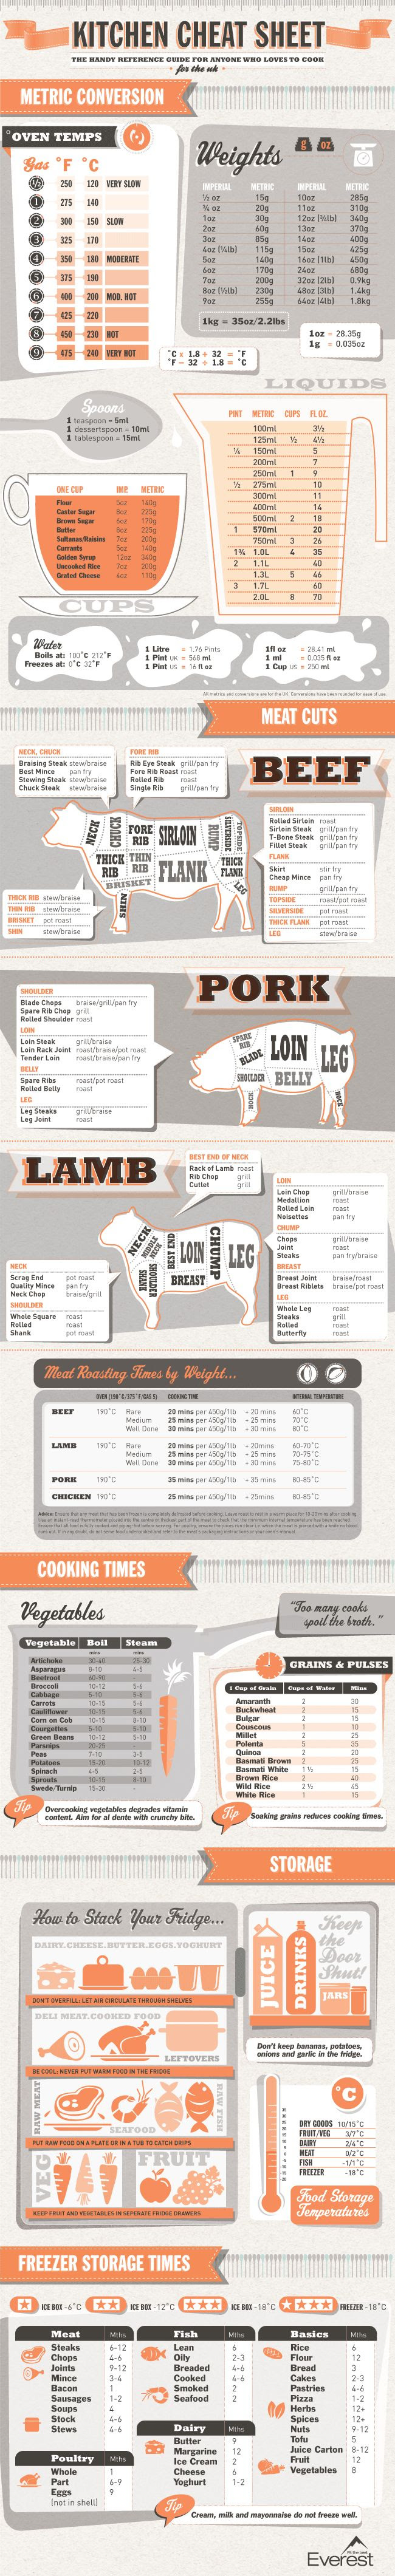 Kitchen Cheat Sheet - printing